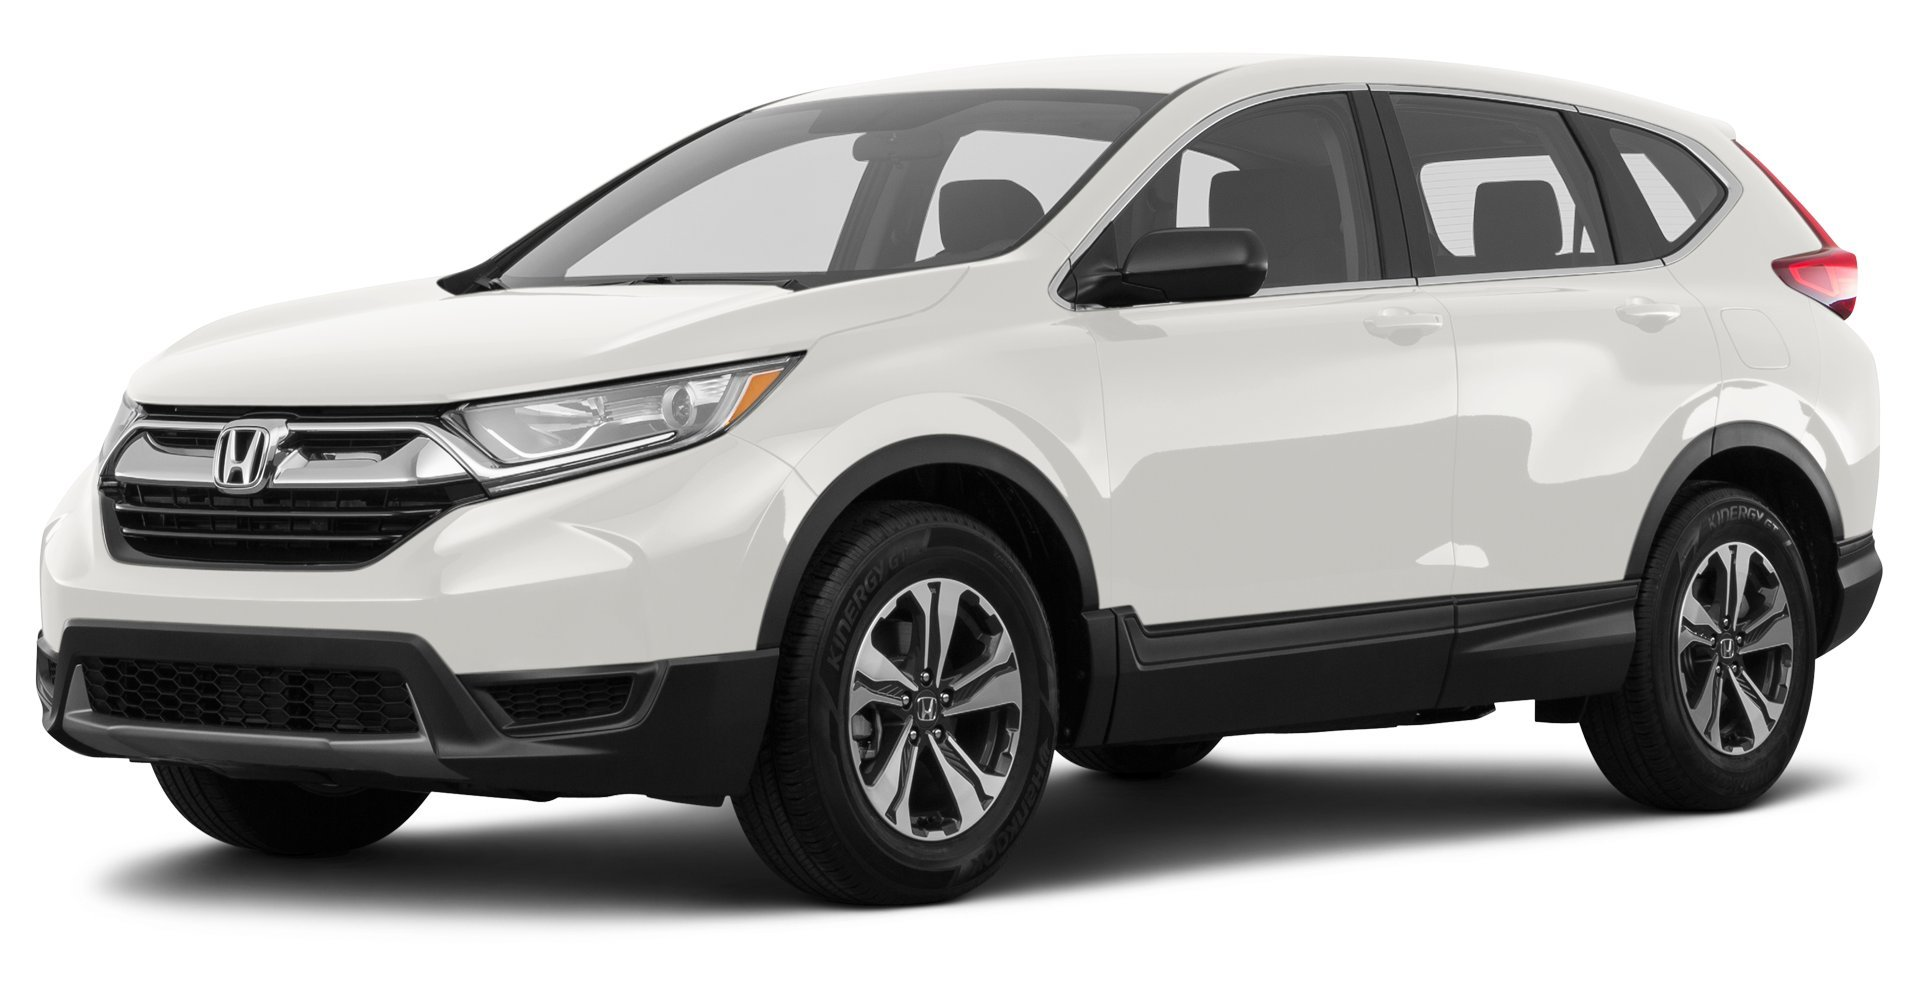 2017 hyundai tucson reviews images and specs for Is honda crv all wheel drive